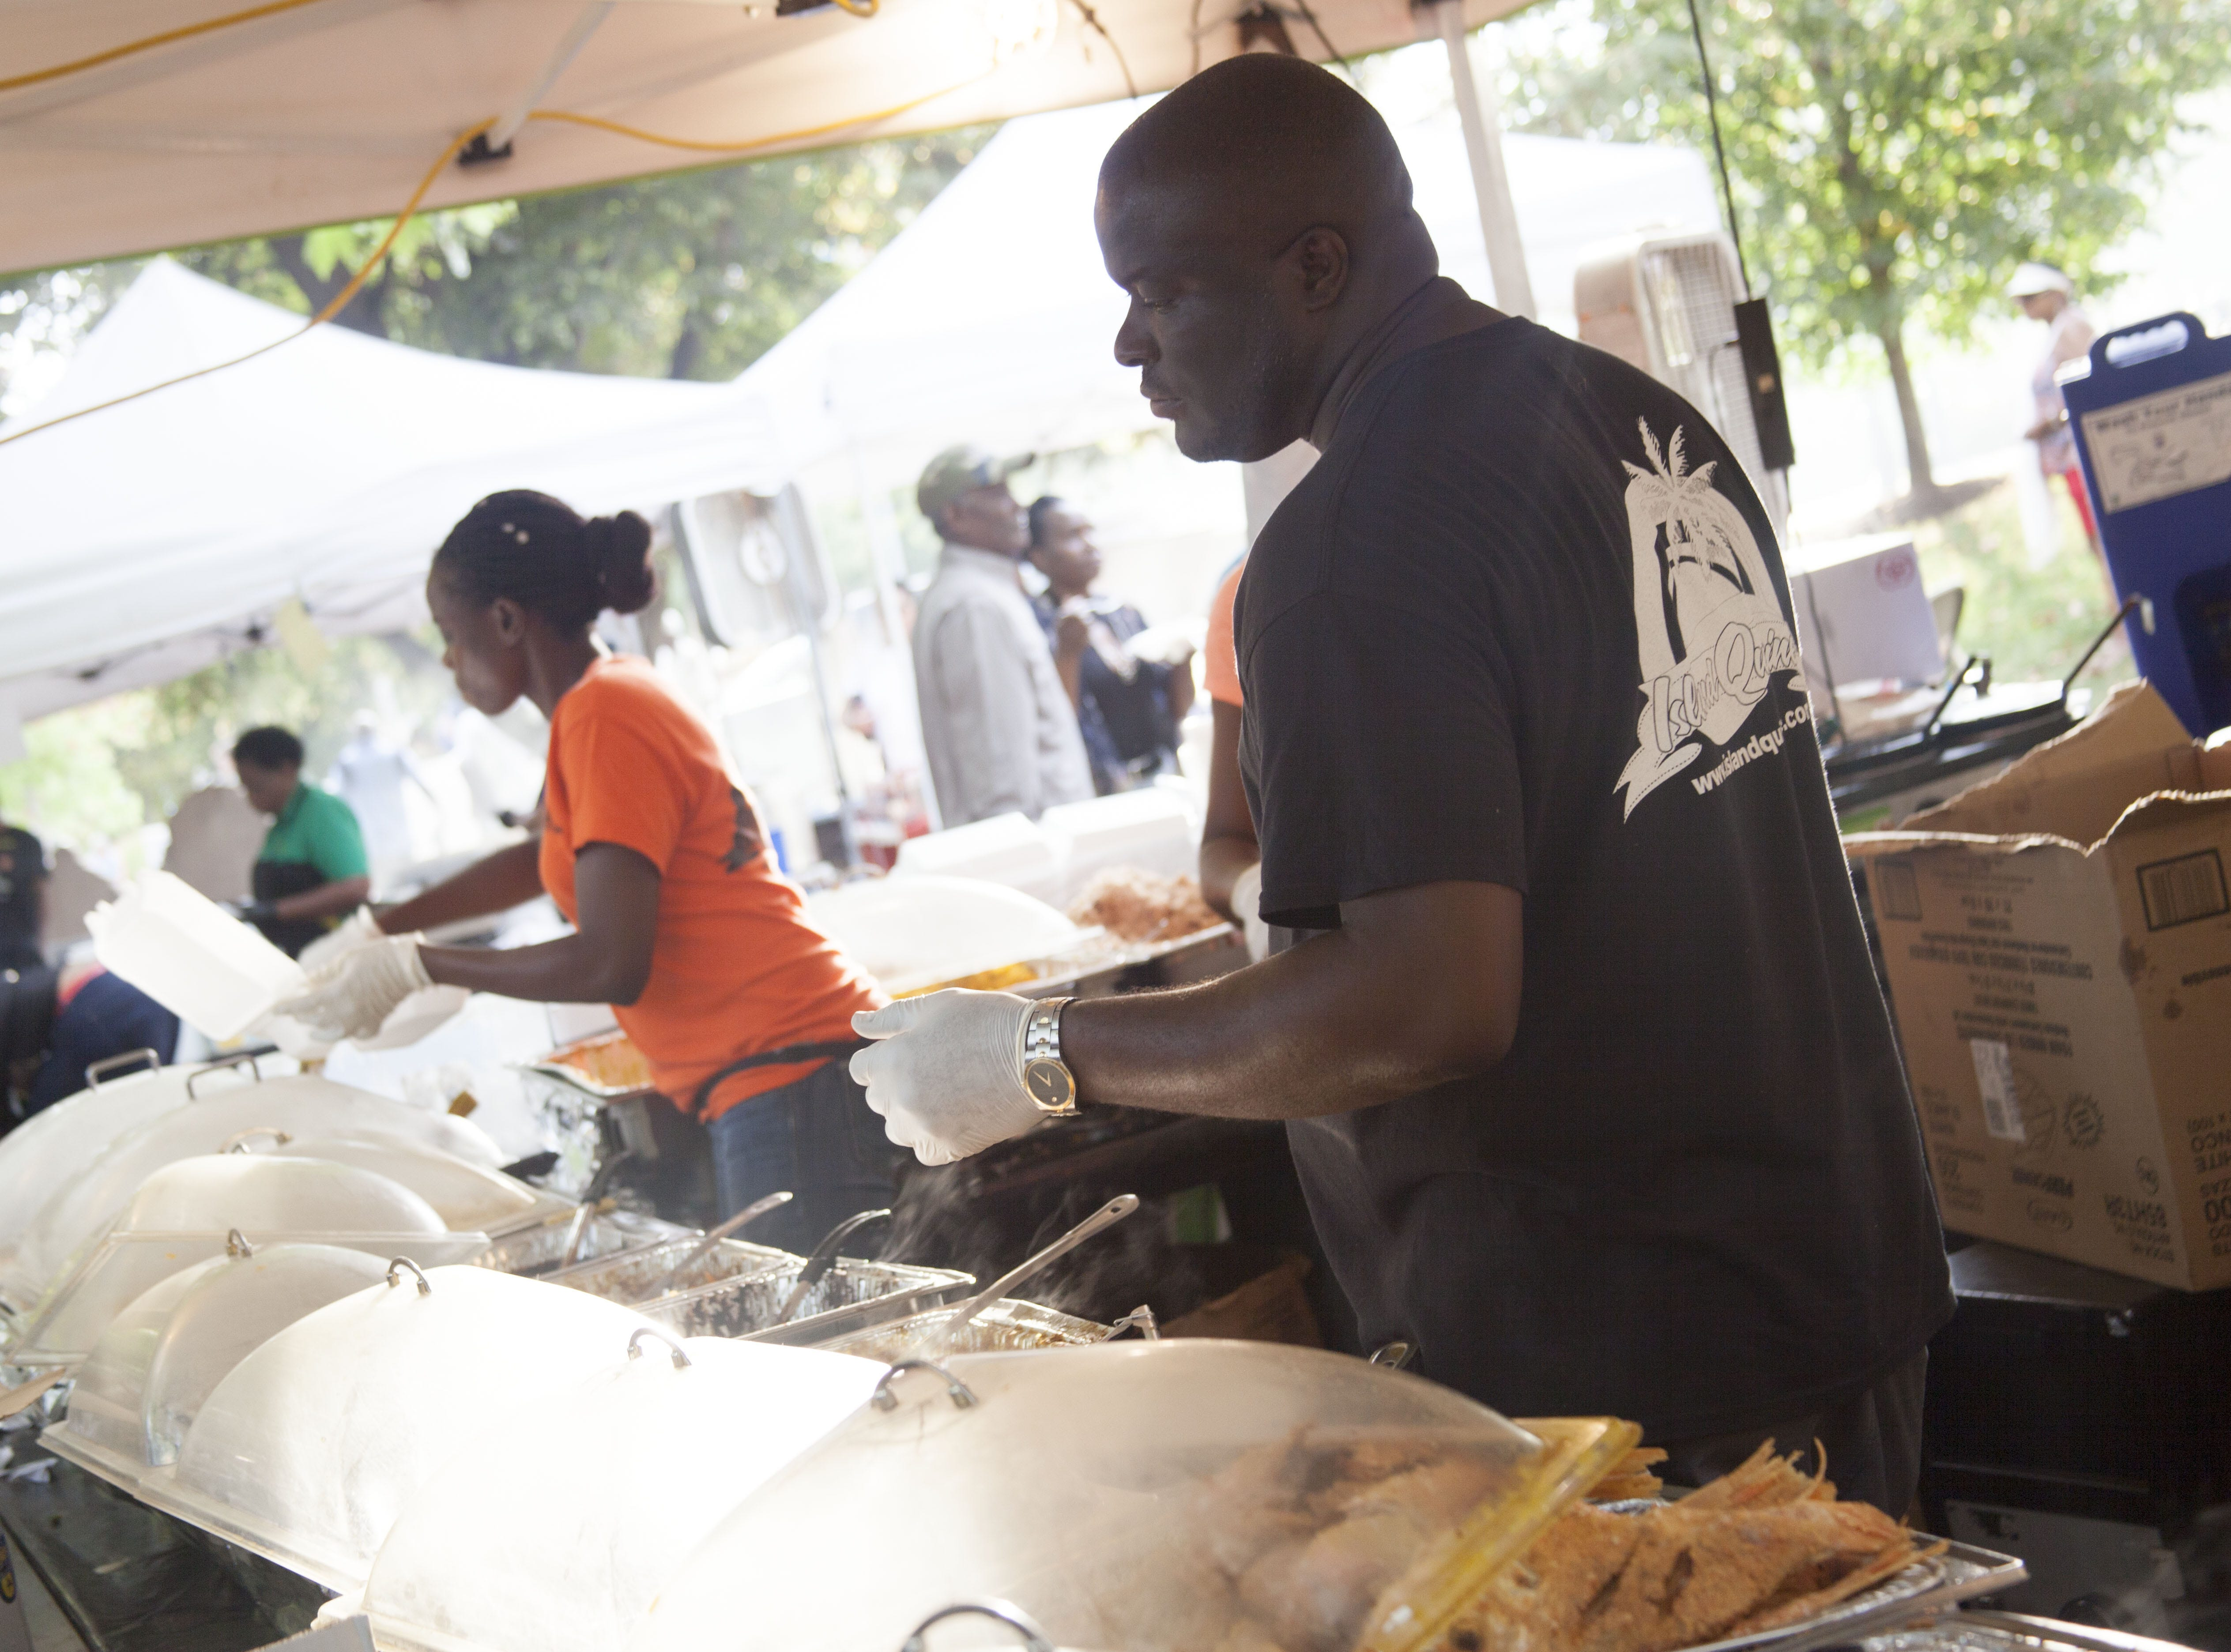 Donovan Murphy of Island Quizine serves Jamaican fare to attendees of the 2018 Goombay Festival at the Roger McGuire Green in Pack Square Park on Sept. 8, 2018.